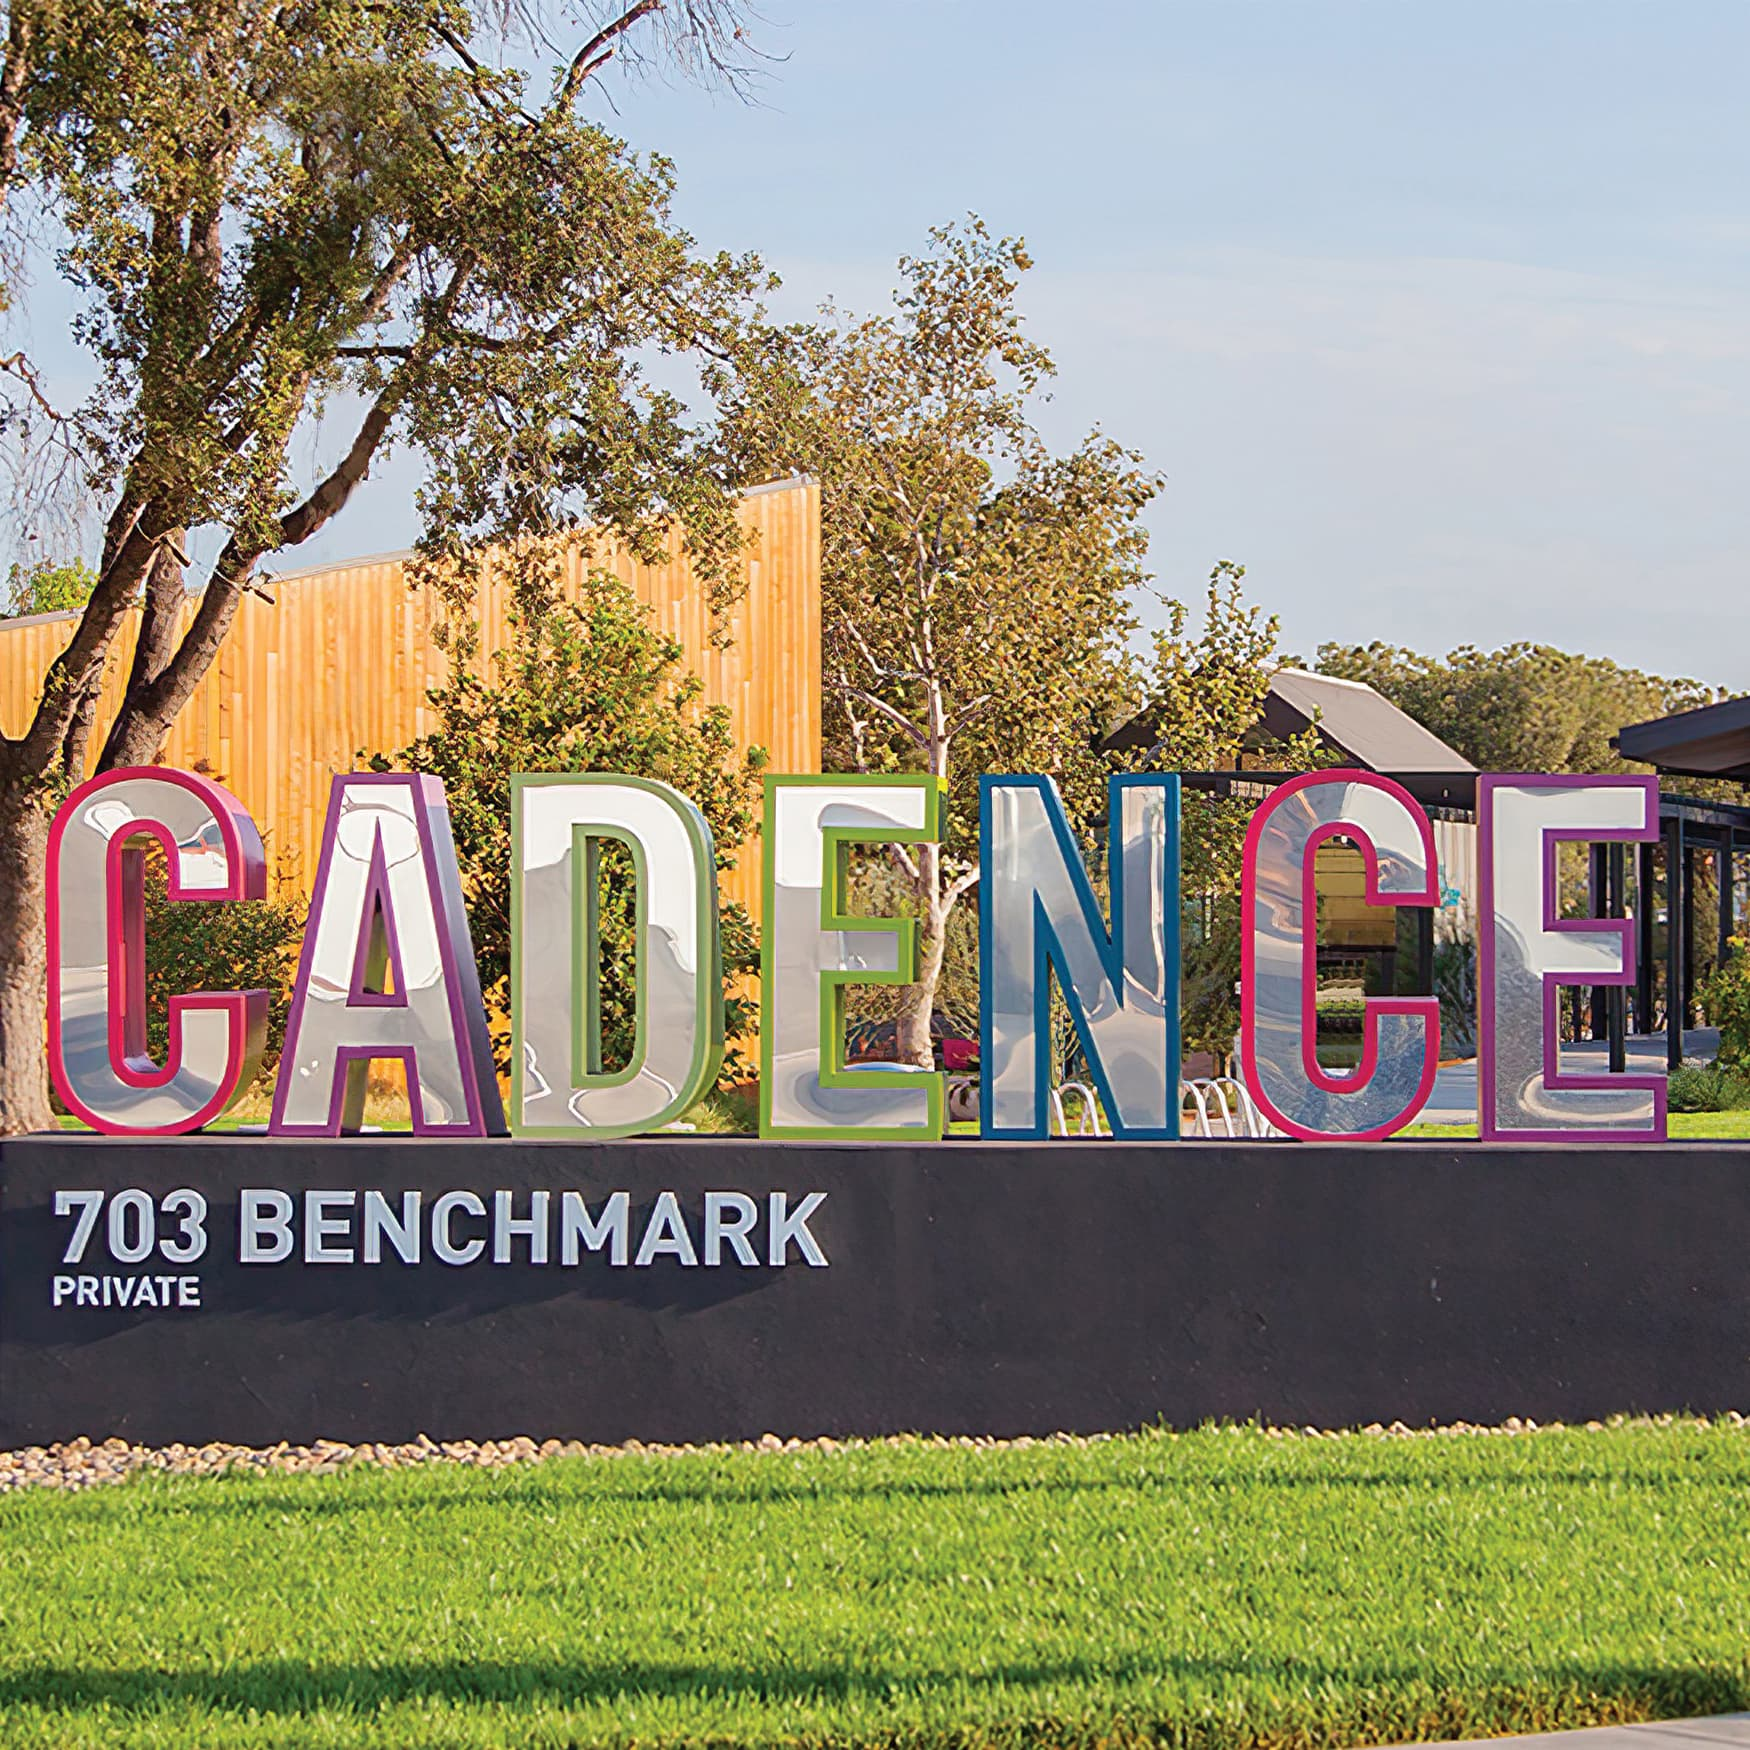 A monument sign at Cadence Park in Irvine, California (RSM Design) marks the entrance of one of many parks within the Great Park Neighborhoods.